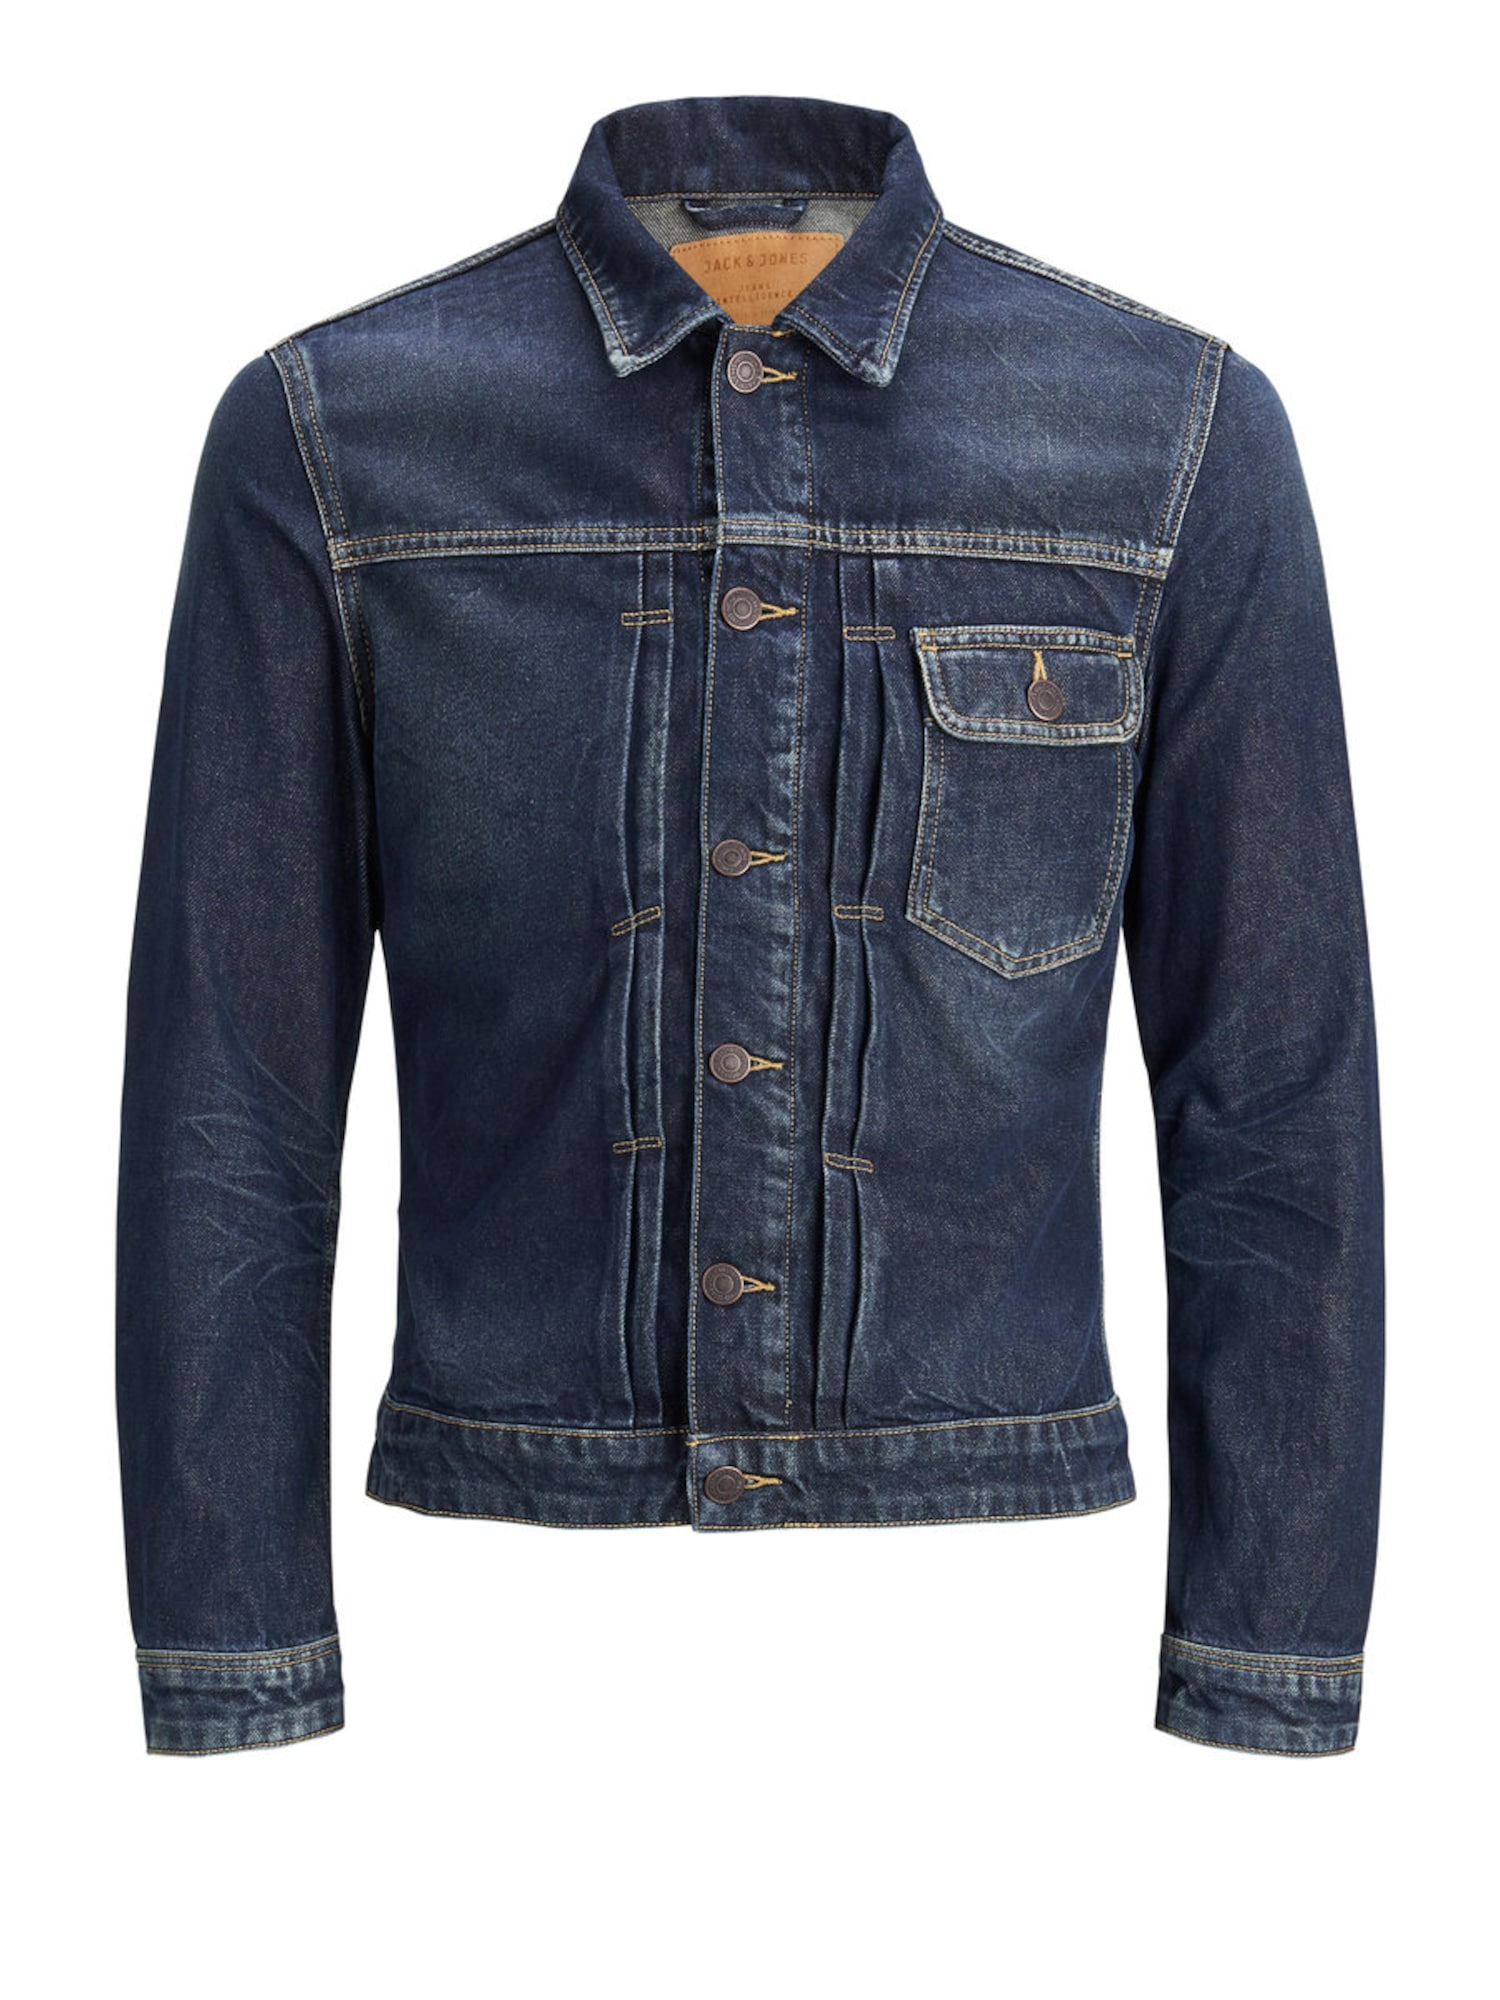 JACK & JONES, Heren Tussenjas 'JACK JOS 540', blauw denim